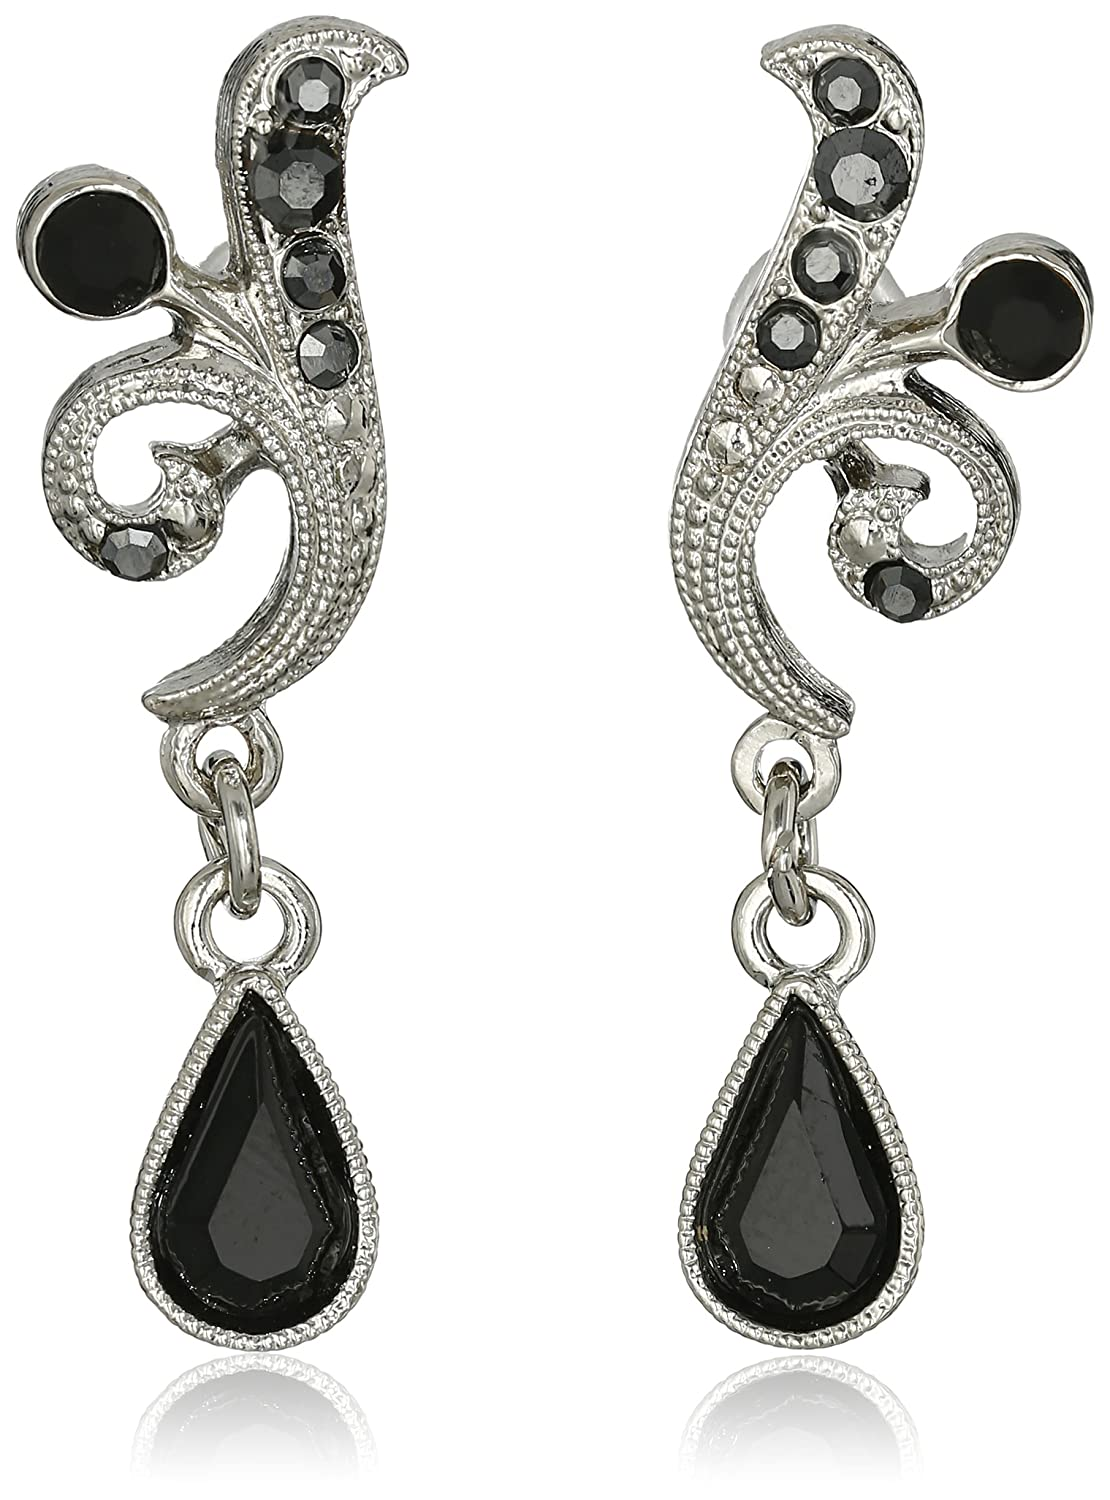 1920s Accessories Guide 1928 Jewelry Silver-Tone Black and Hematite Color Crystal Vine Drop Earrings $21.00 AT vintagedancer.com